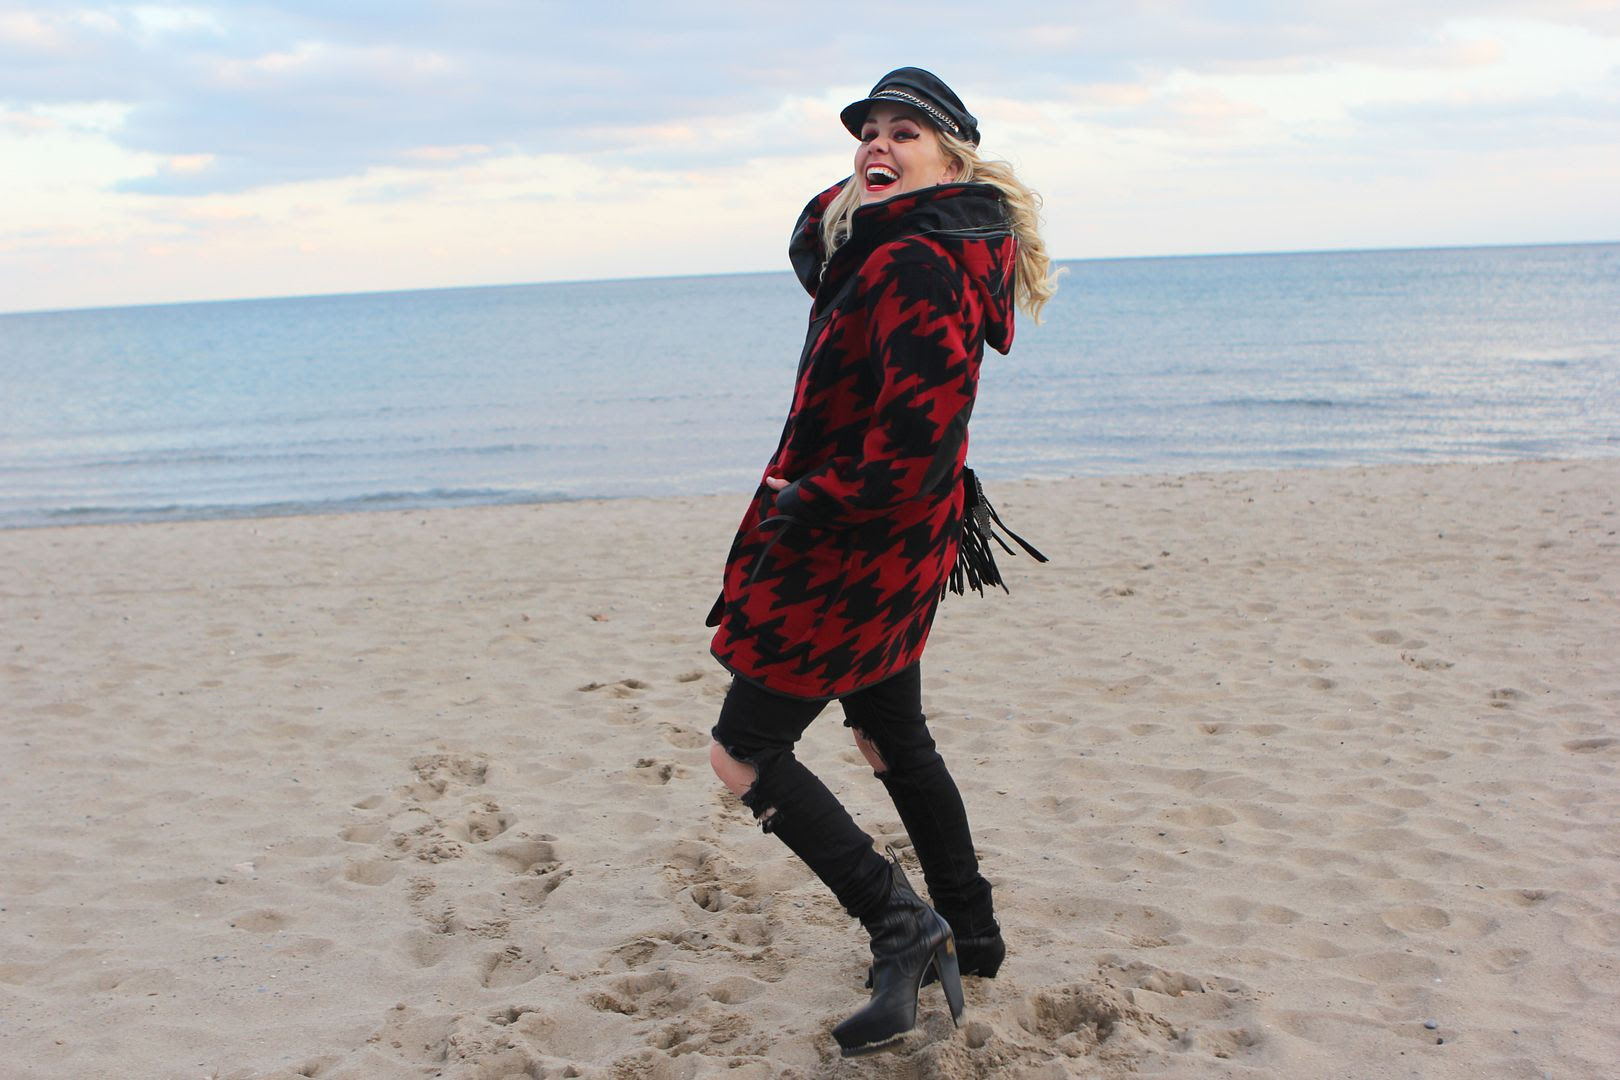 photo samanthabeckerman-coach-girl-sisters-canada-lakeontario-coachbag-fallwinter_zps19dfcf72.jpg